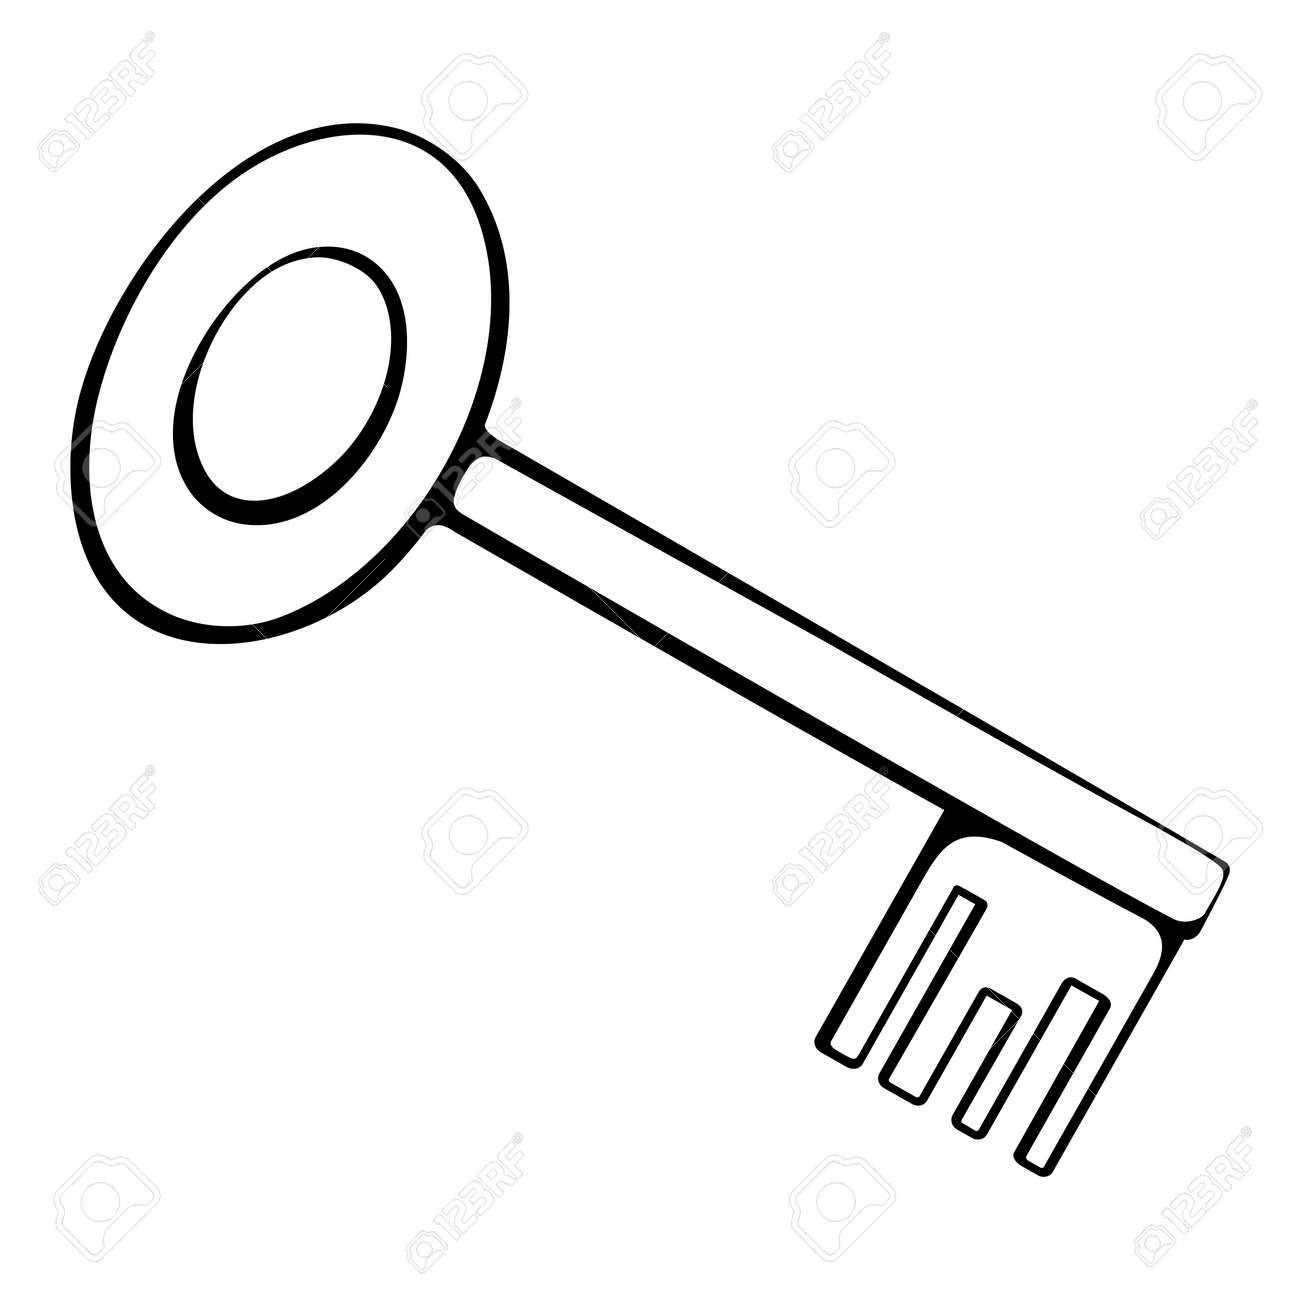 black and white outline of the key Stock Vector - 24167873